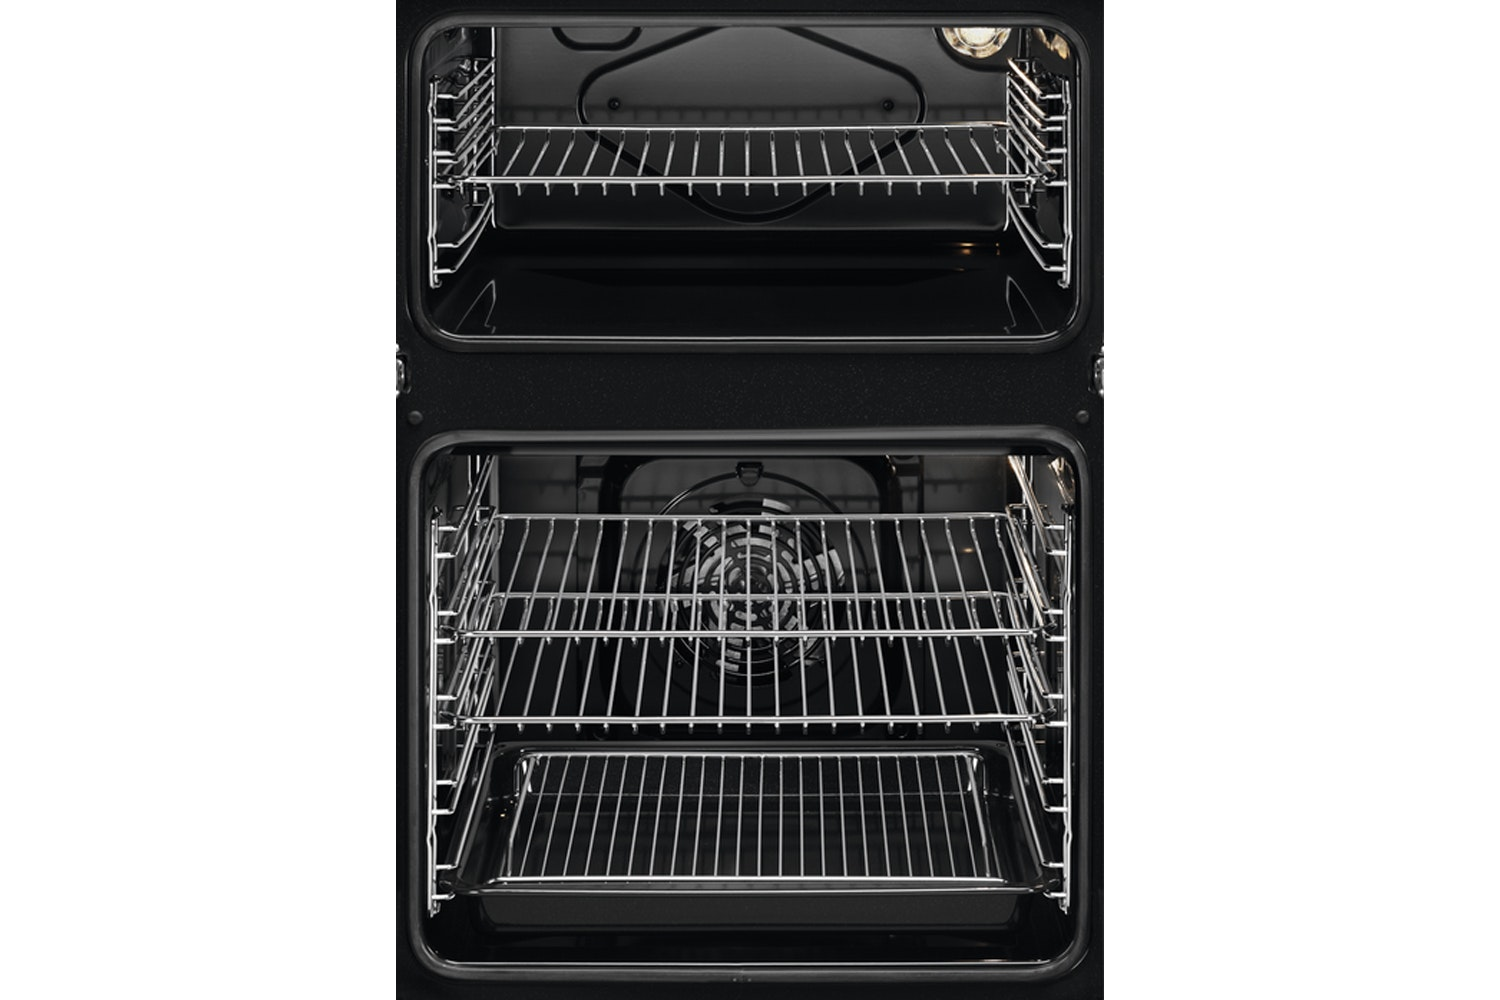 Zanussi Built-in Double Oven | ZOD35661WK